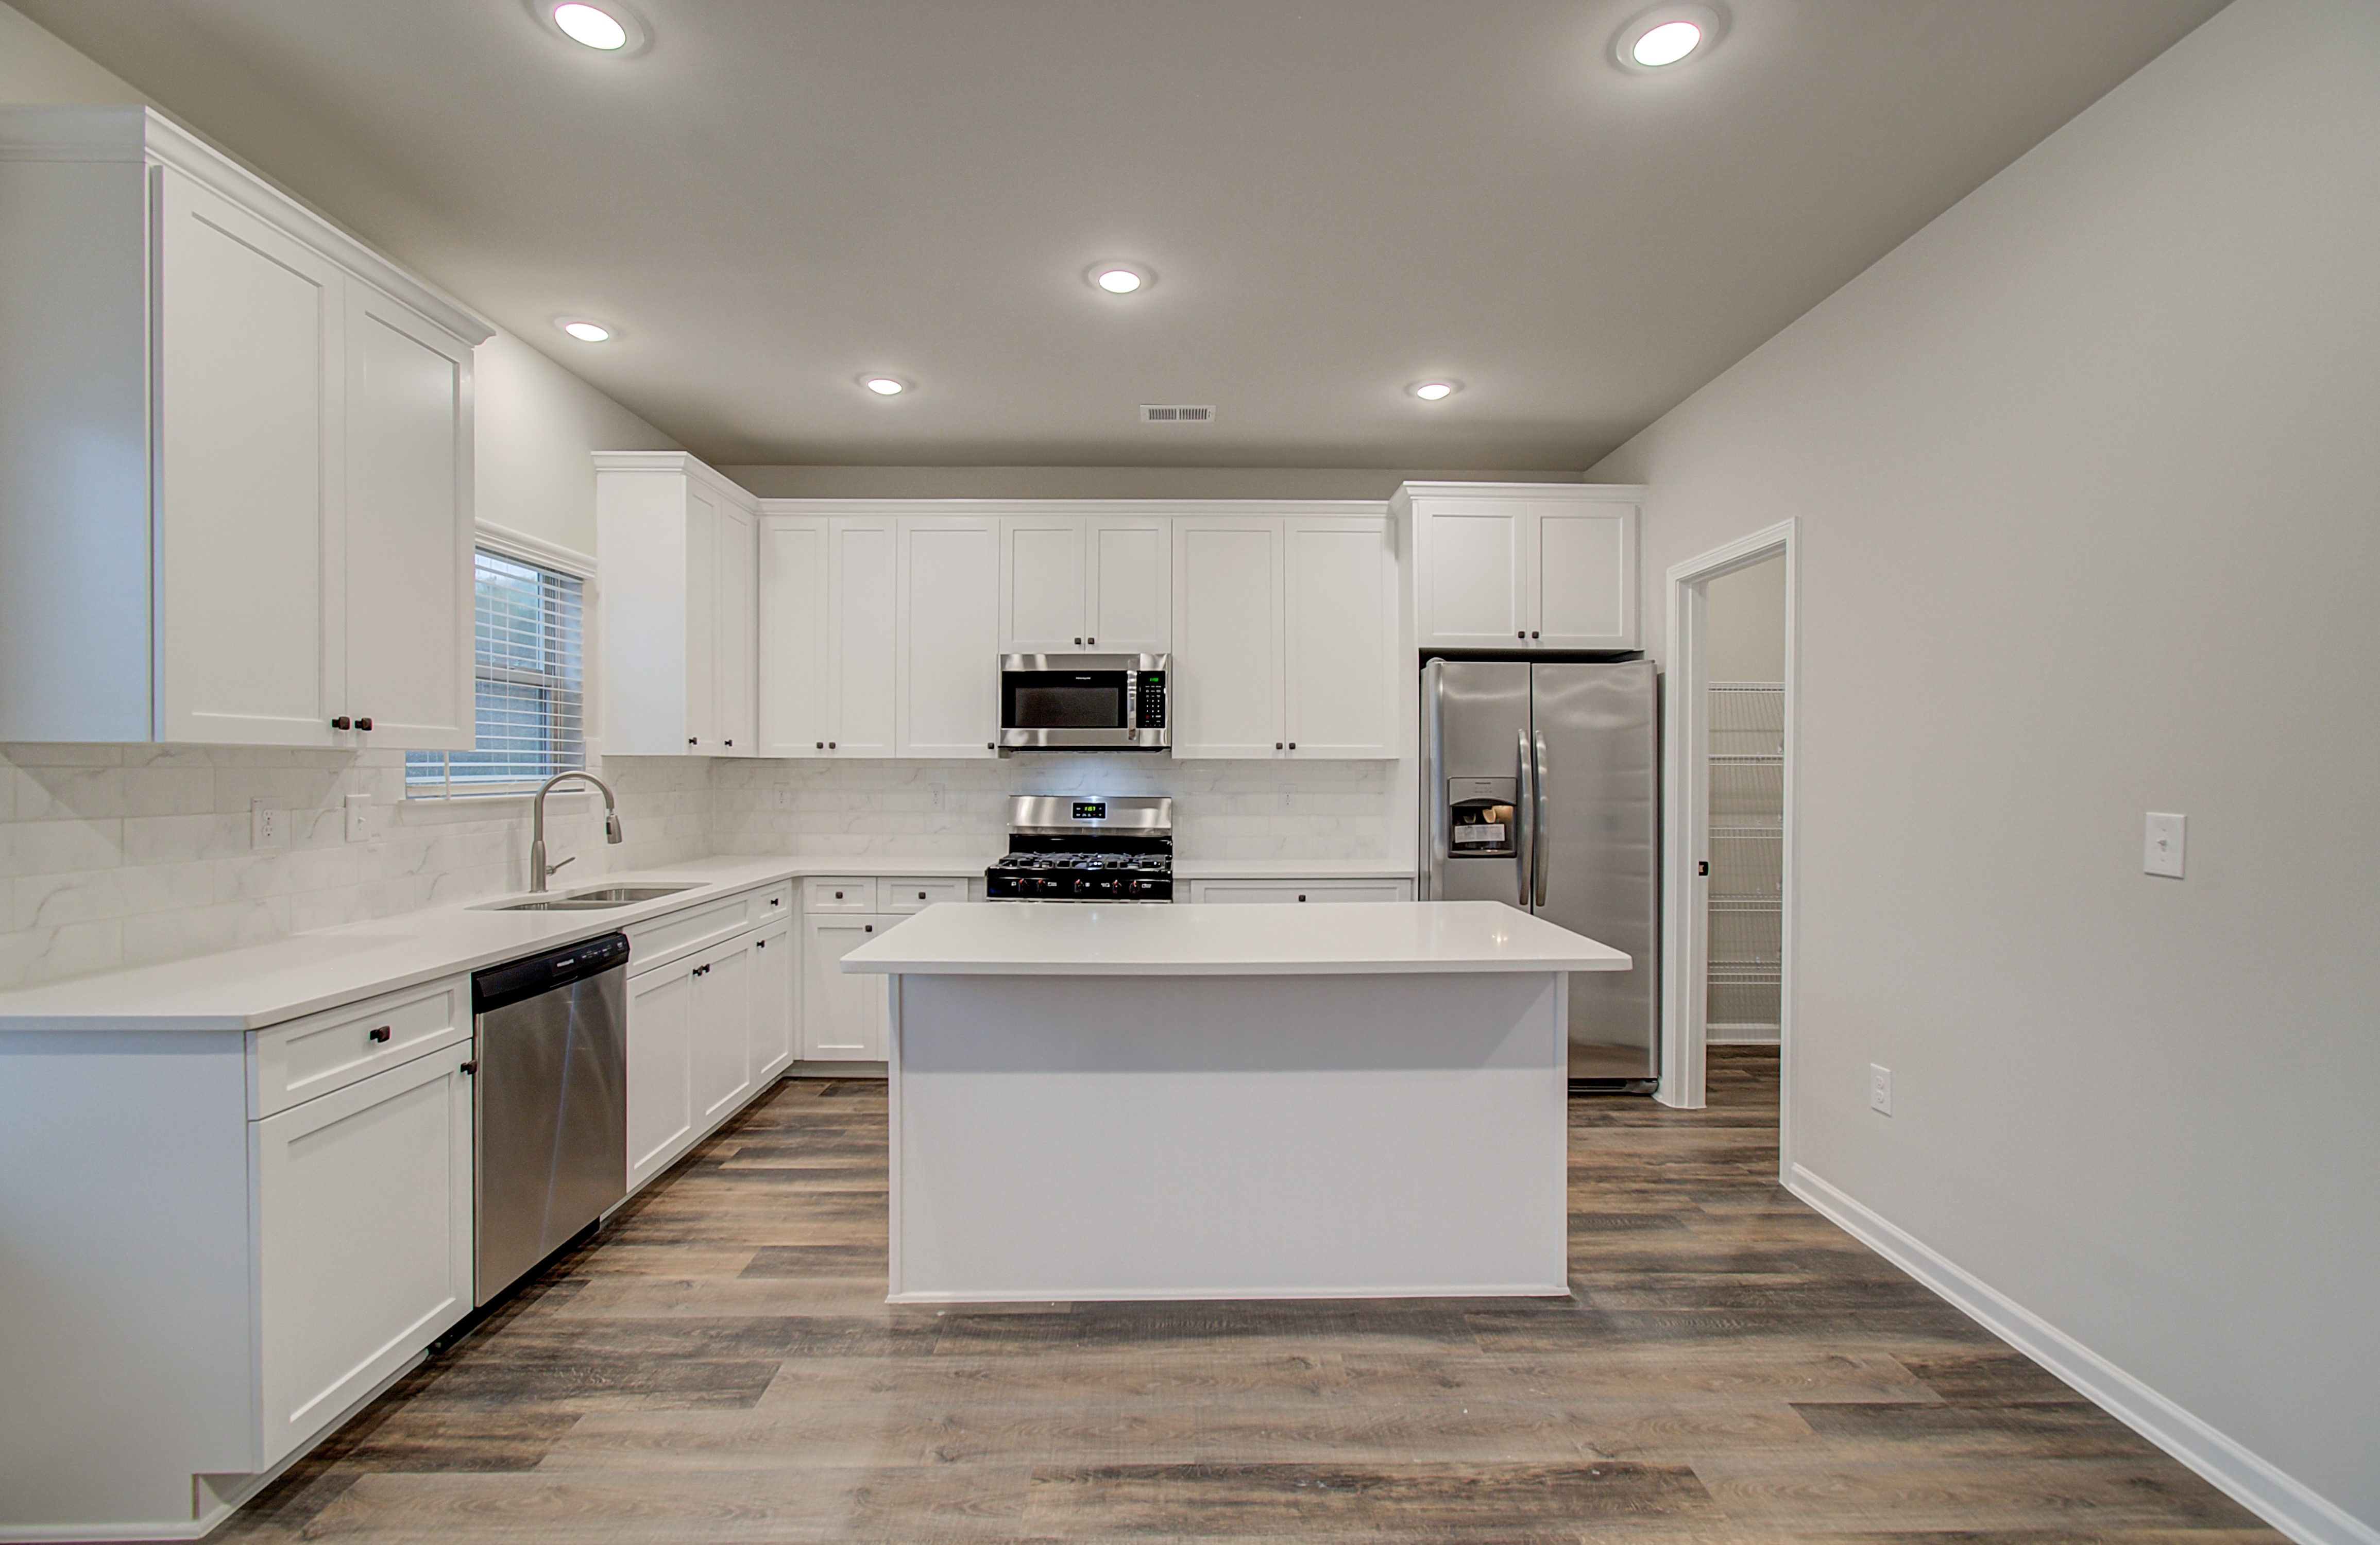 Kitchen featured in The Horizon By Knight Homes in Atlanta, GA